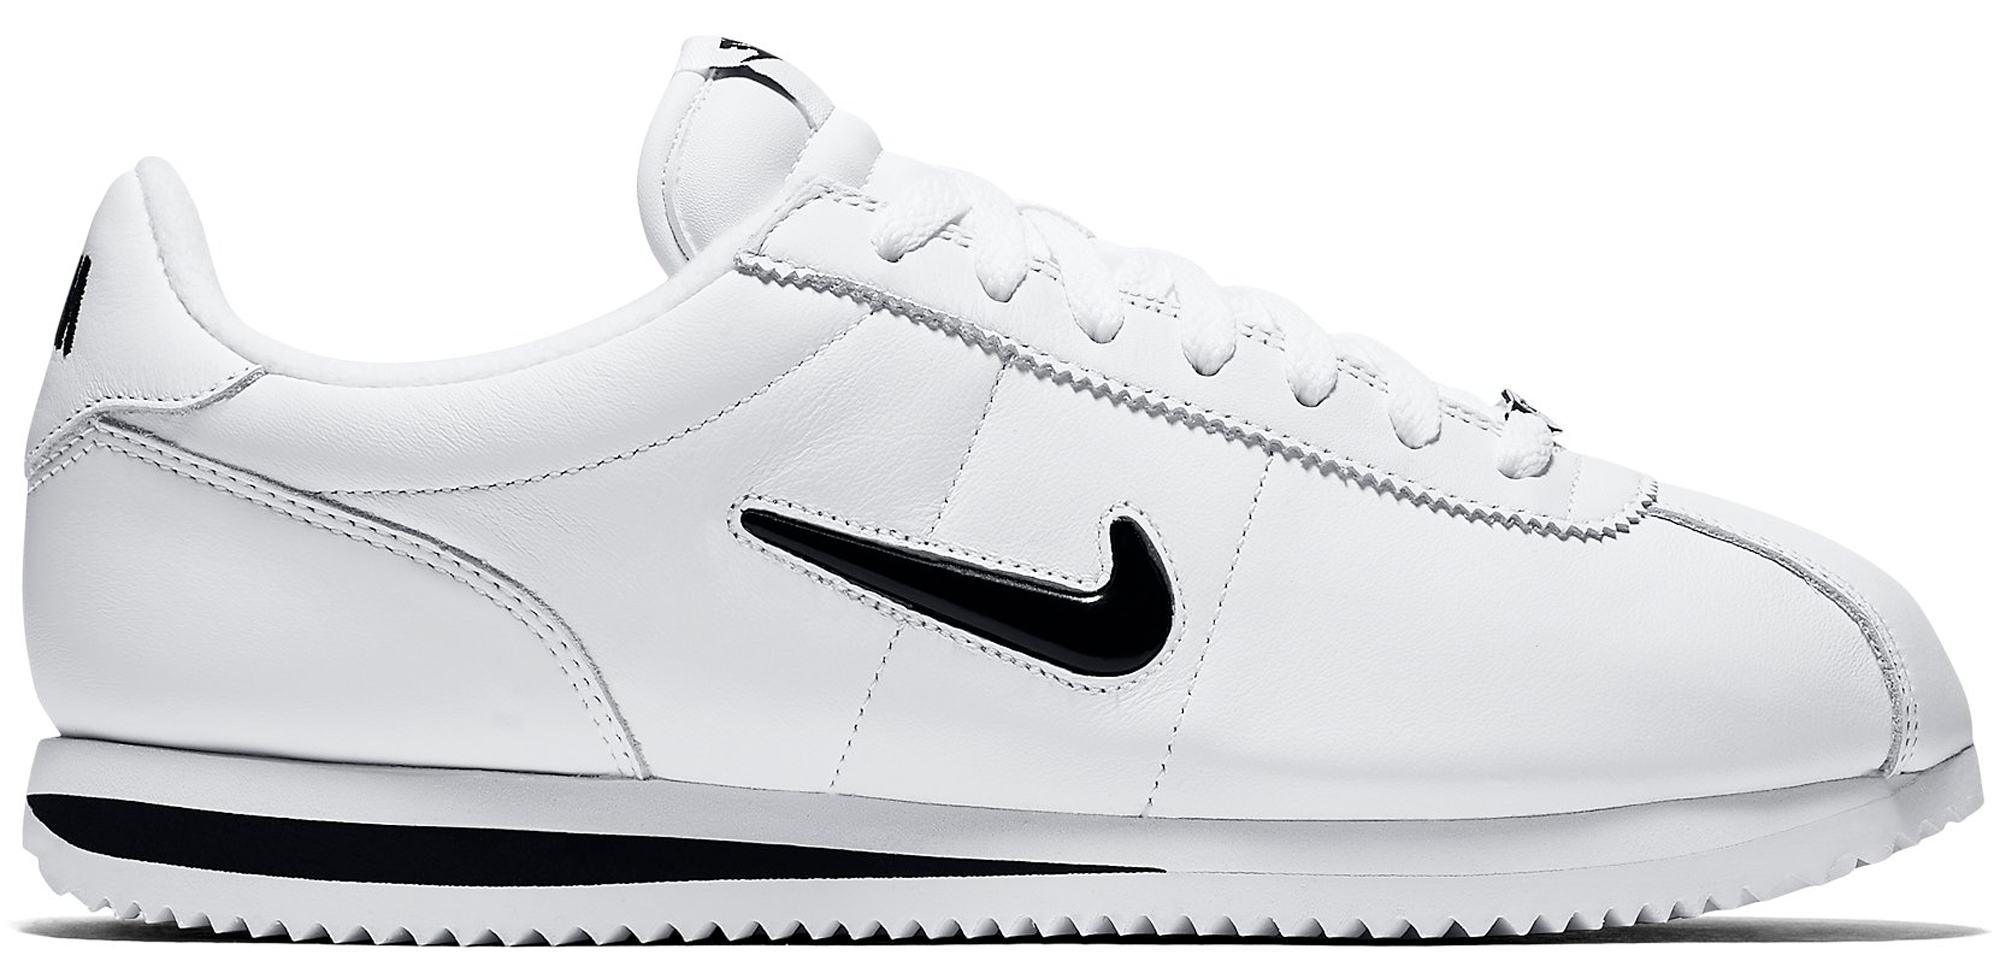 Nike Cortez Basic Jewel QS White Black Diamond QS 2017 Retro f42b241d9c2e